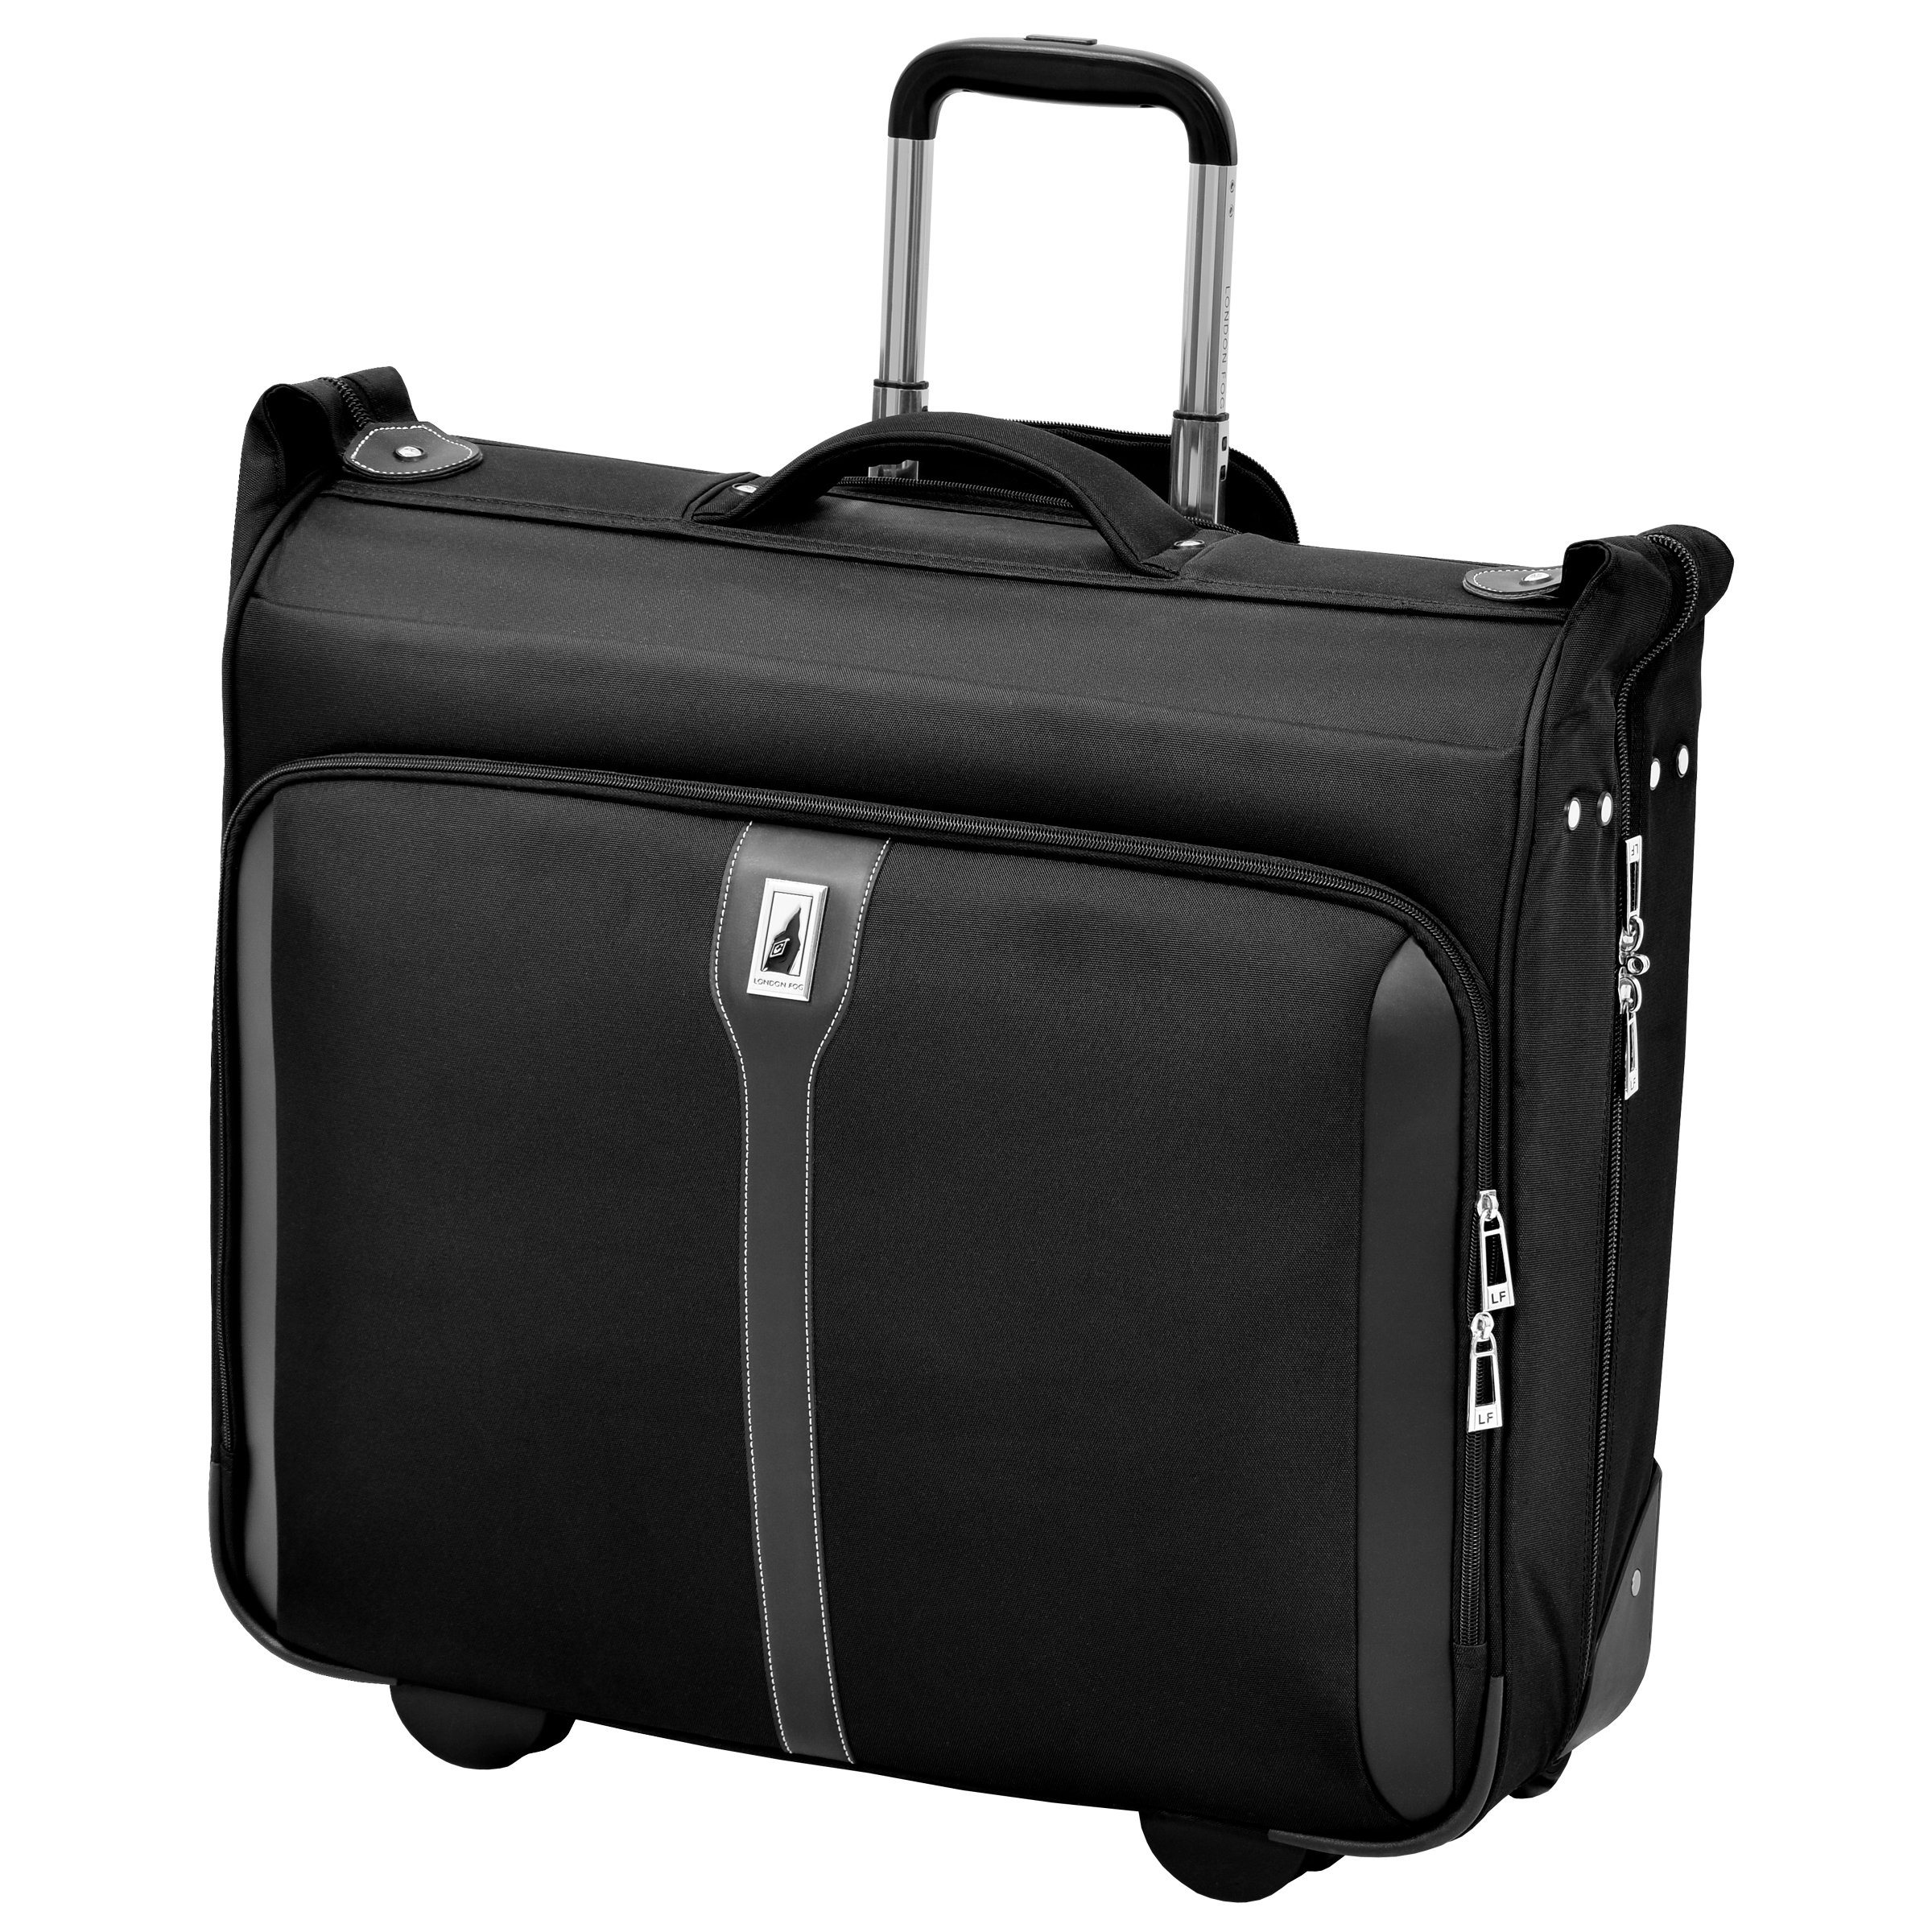 London Fog upright checked garment bag